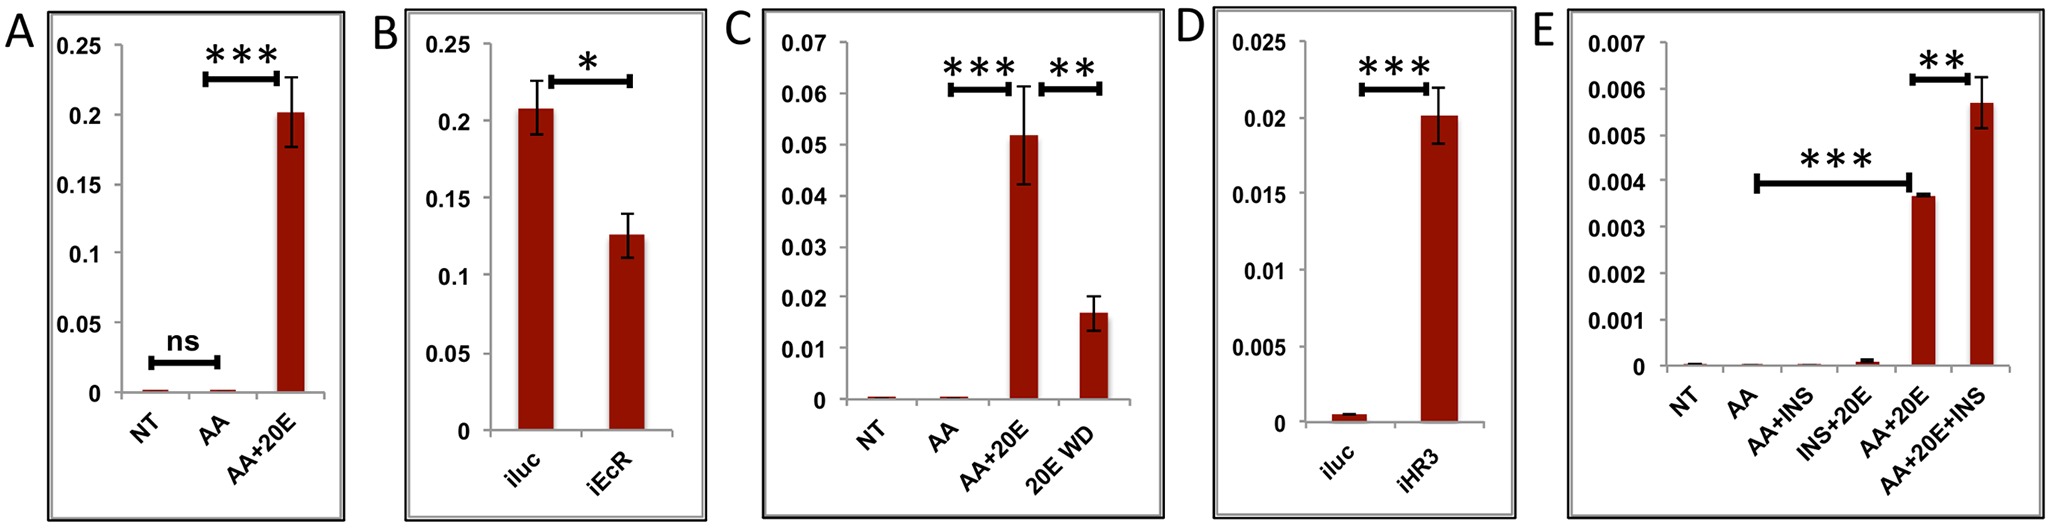 Effects of AAs, 20E, insulin and HR3 on YPP genes.